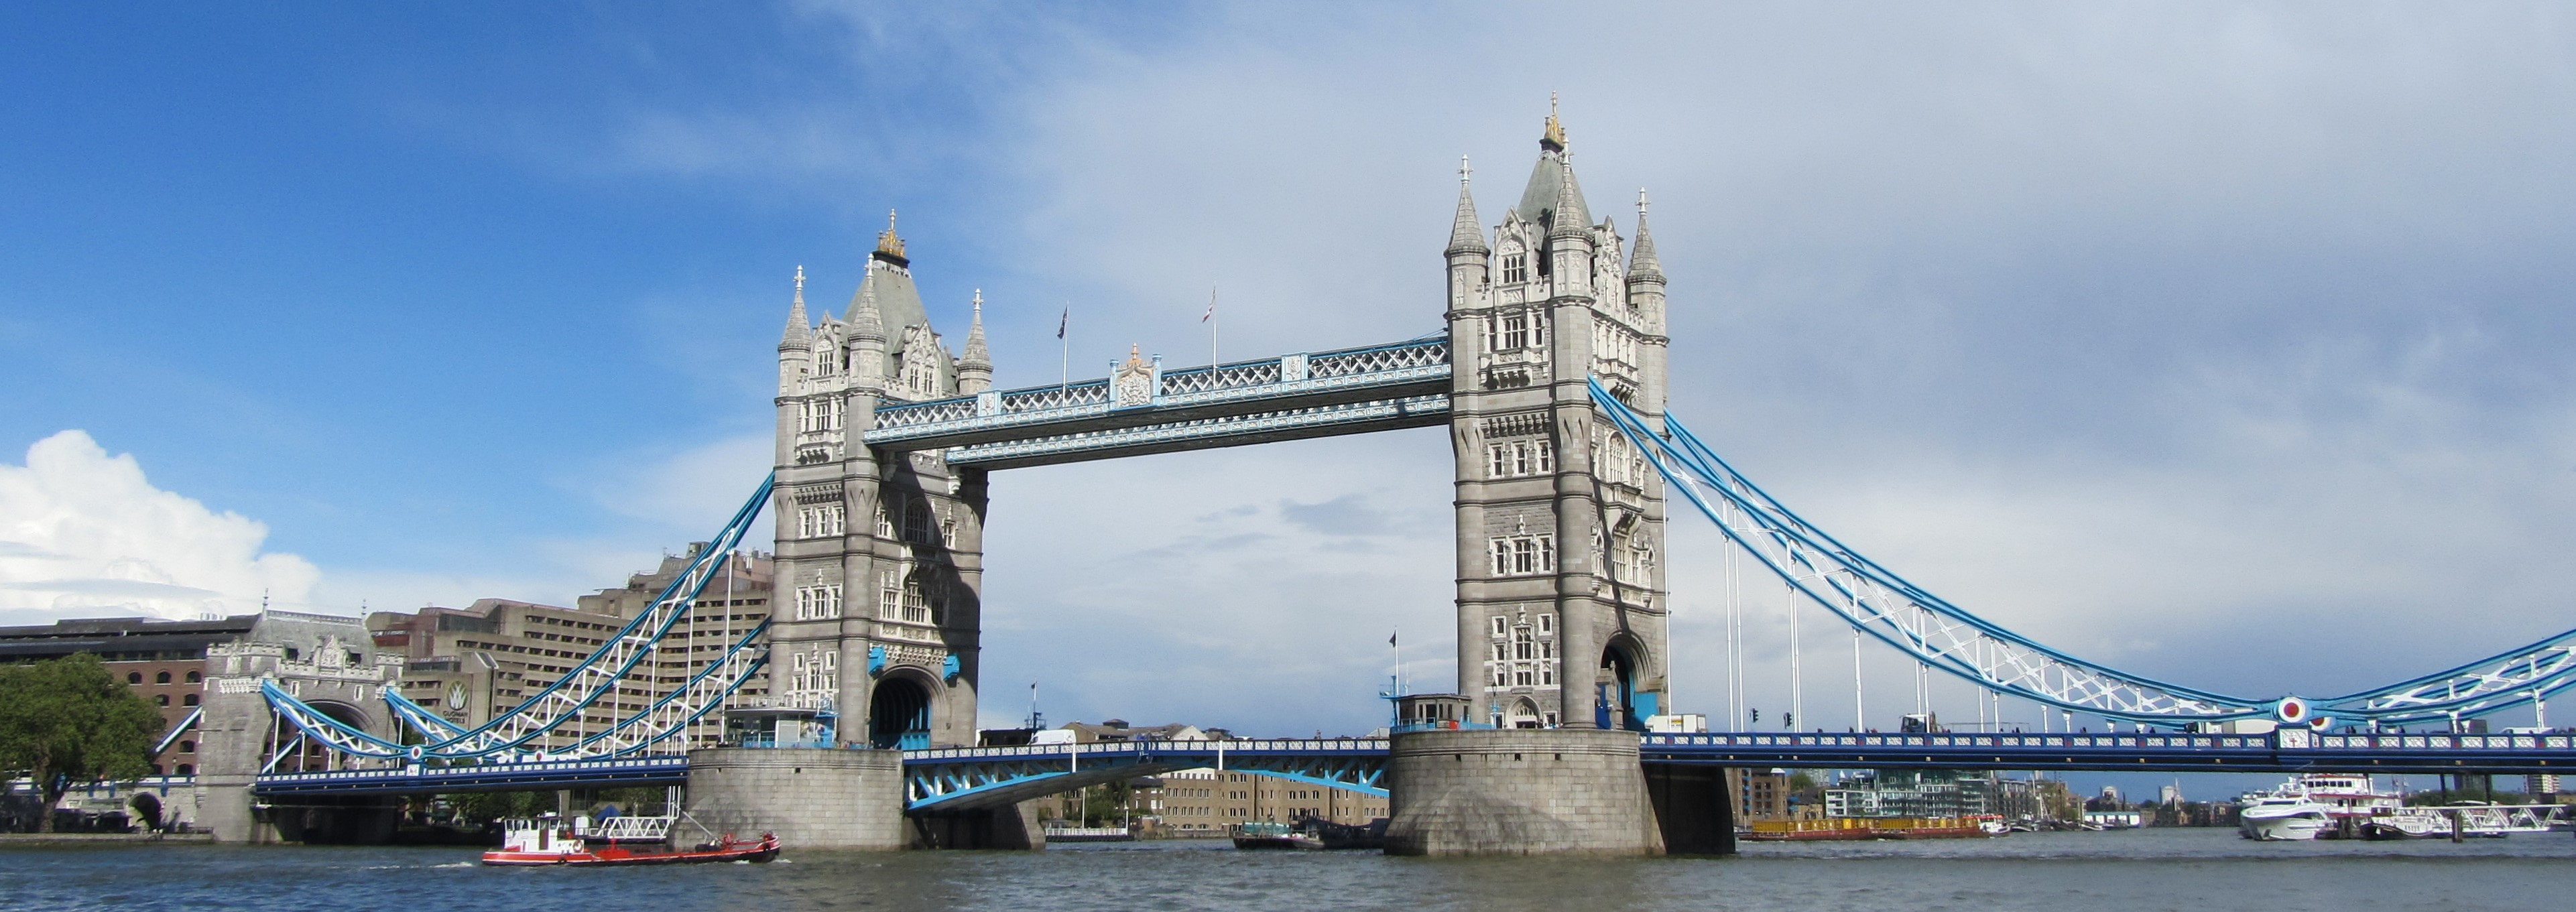 Colour photograph of Tower Bridge stretching across the River Thames